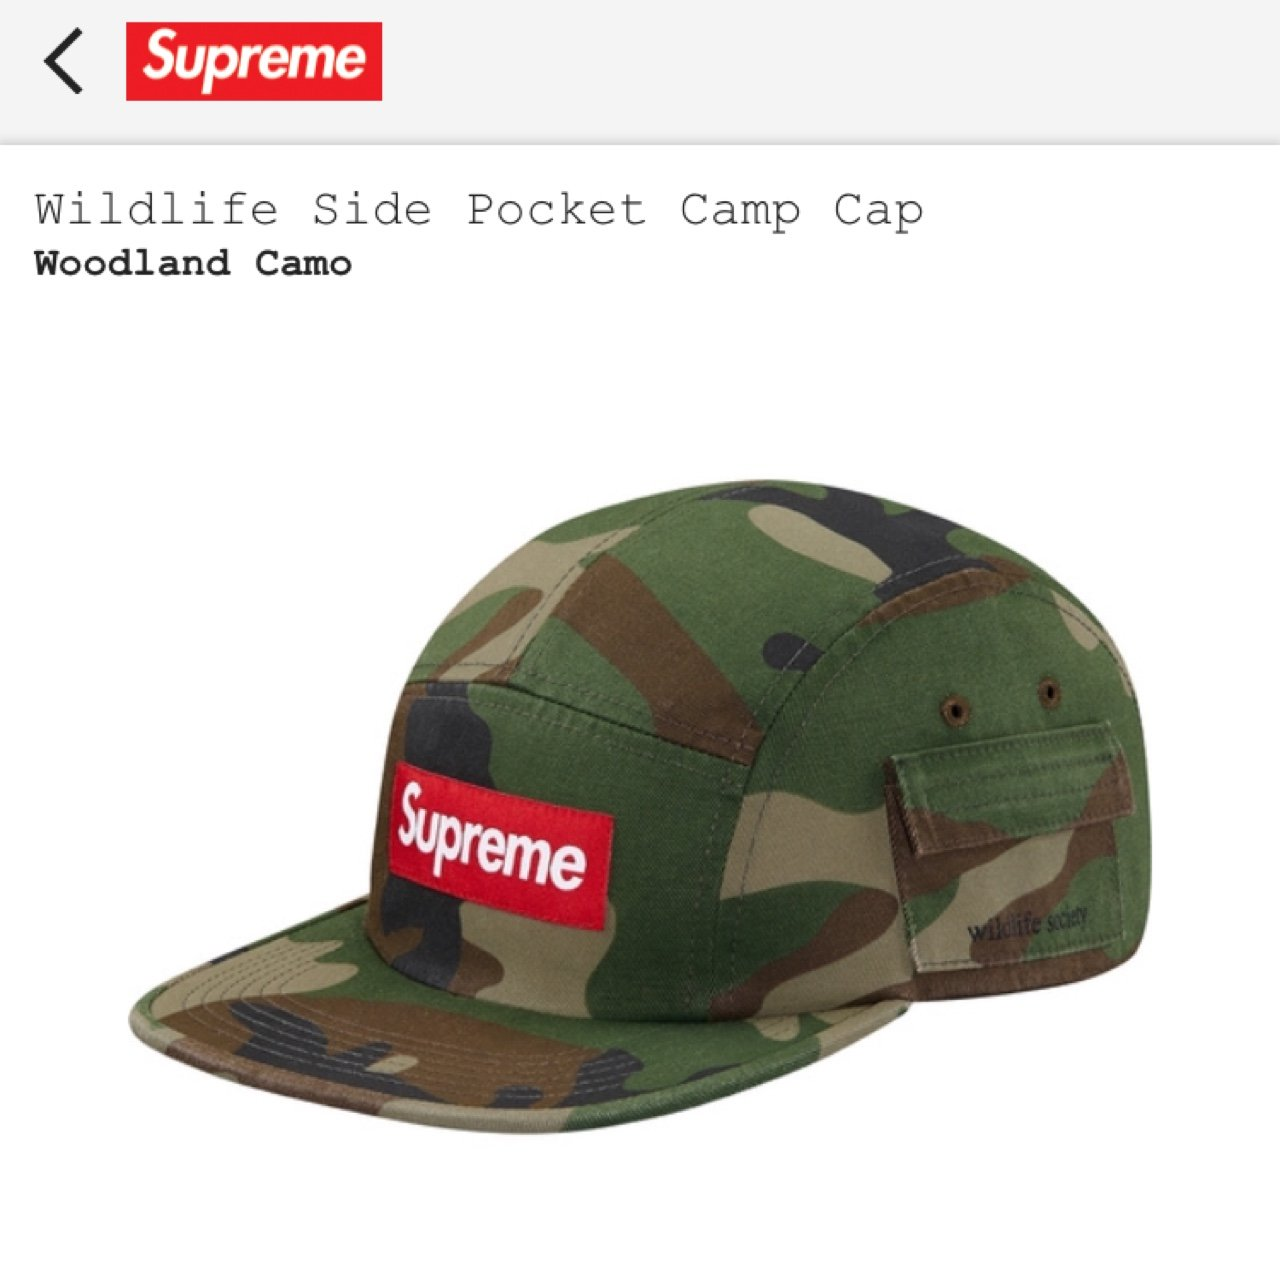 1fca2f50 Supreme wildlife society camo camp hat. Obo. - Depop